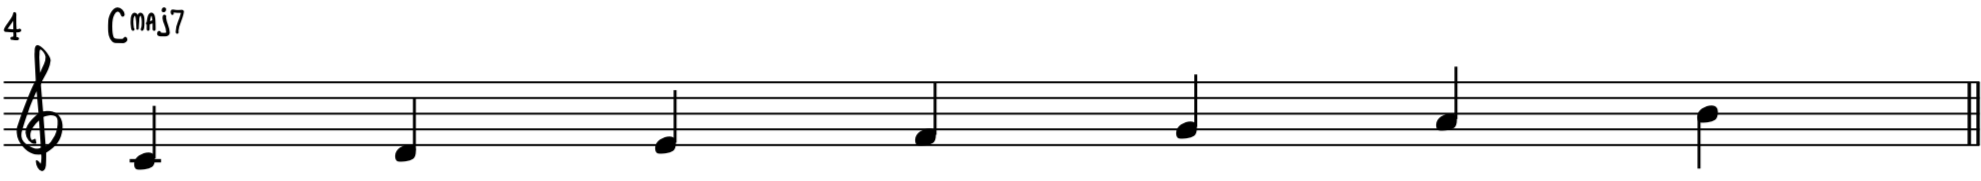 The C major scale to solo over a C major 7th chord